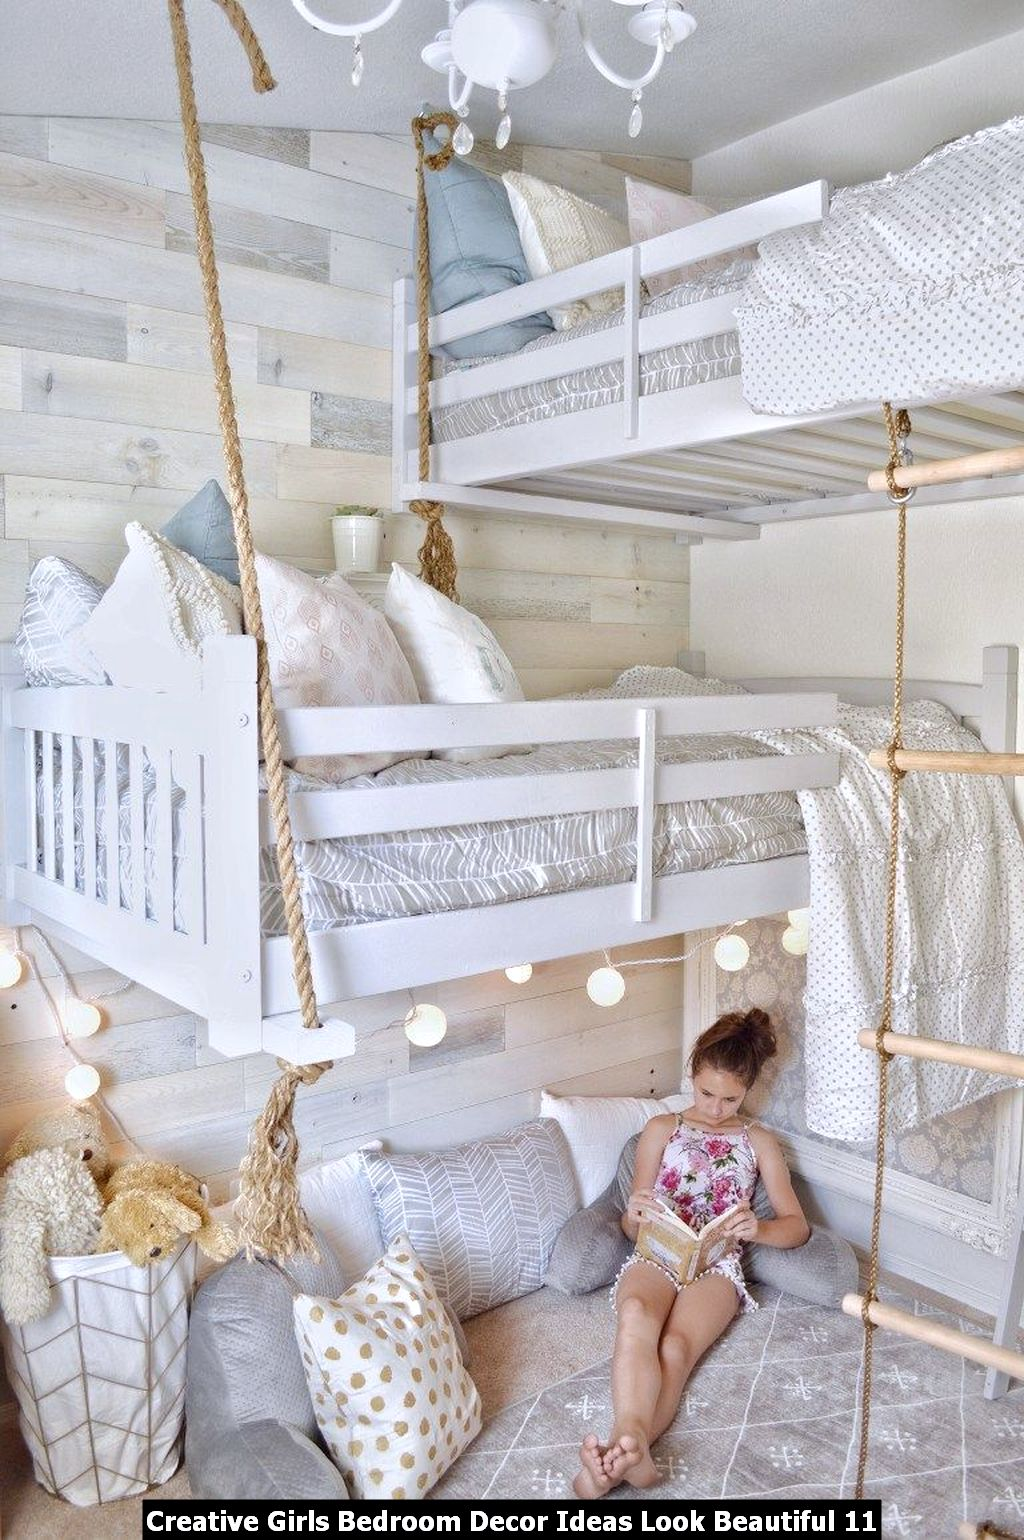 Creative Girls Bedroom Decor Ideas Look Beautiful 11